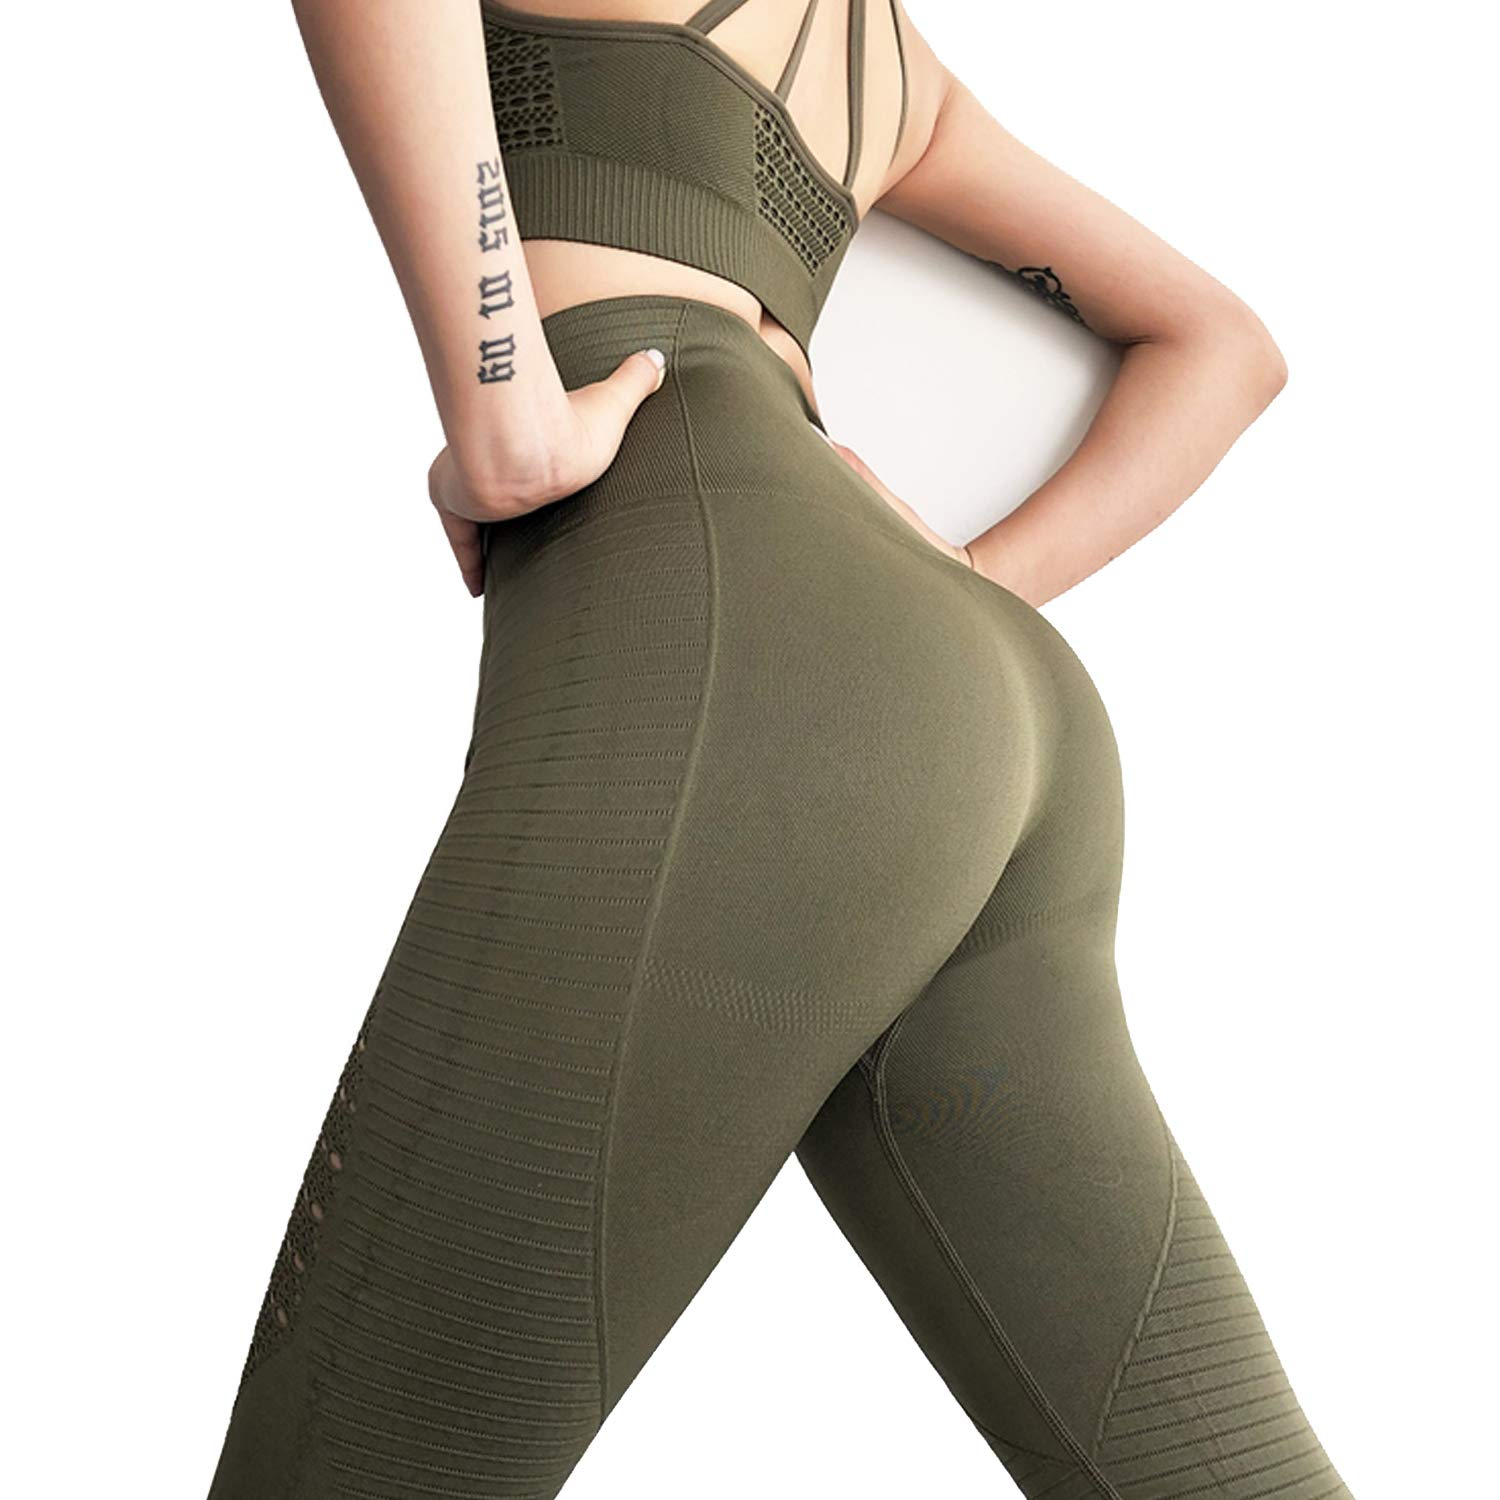 3 Army Green RIOJOY Yoga Pants for Women Hollow Out Elastic Waist Tummy Control Stretchy Pants Fitness Leggings Gym Compression Sports Tights